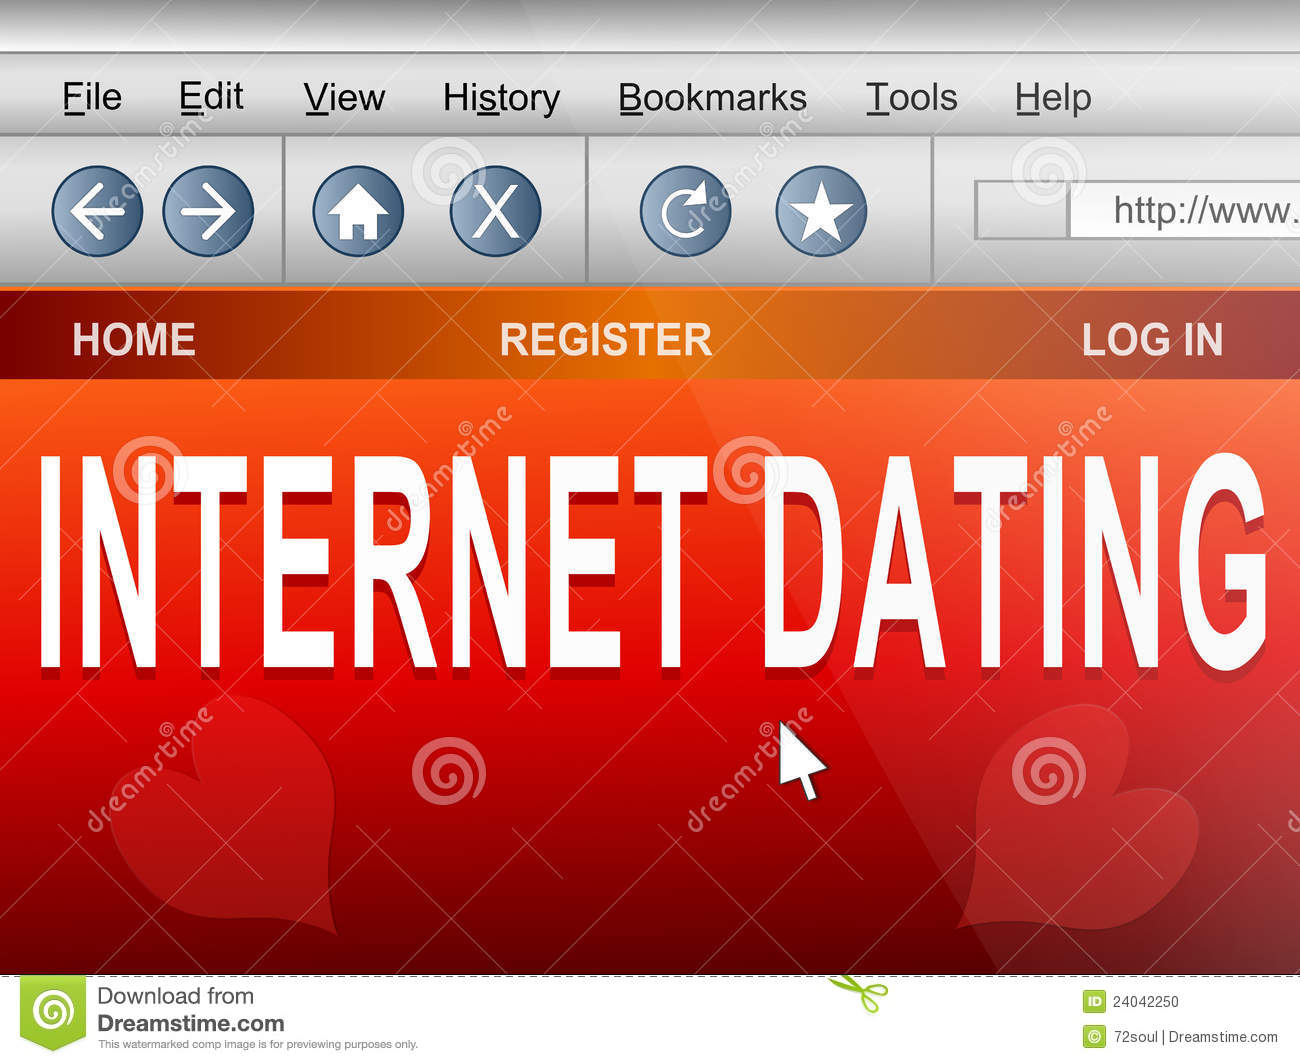 internet dating business plan You can create a winning business plan with no major knowledge in financial writing and business terminology, in less than 5 hours.